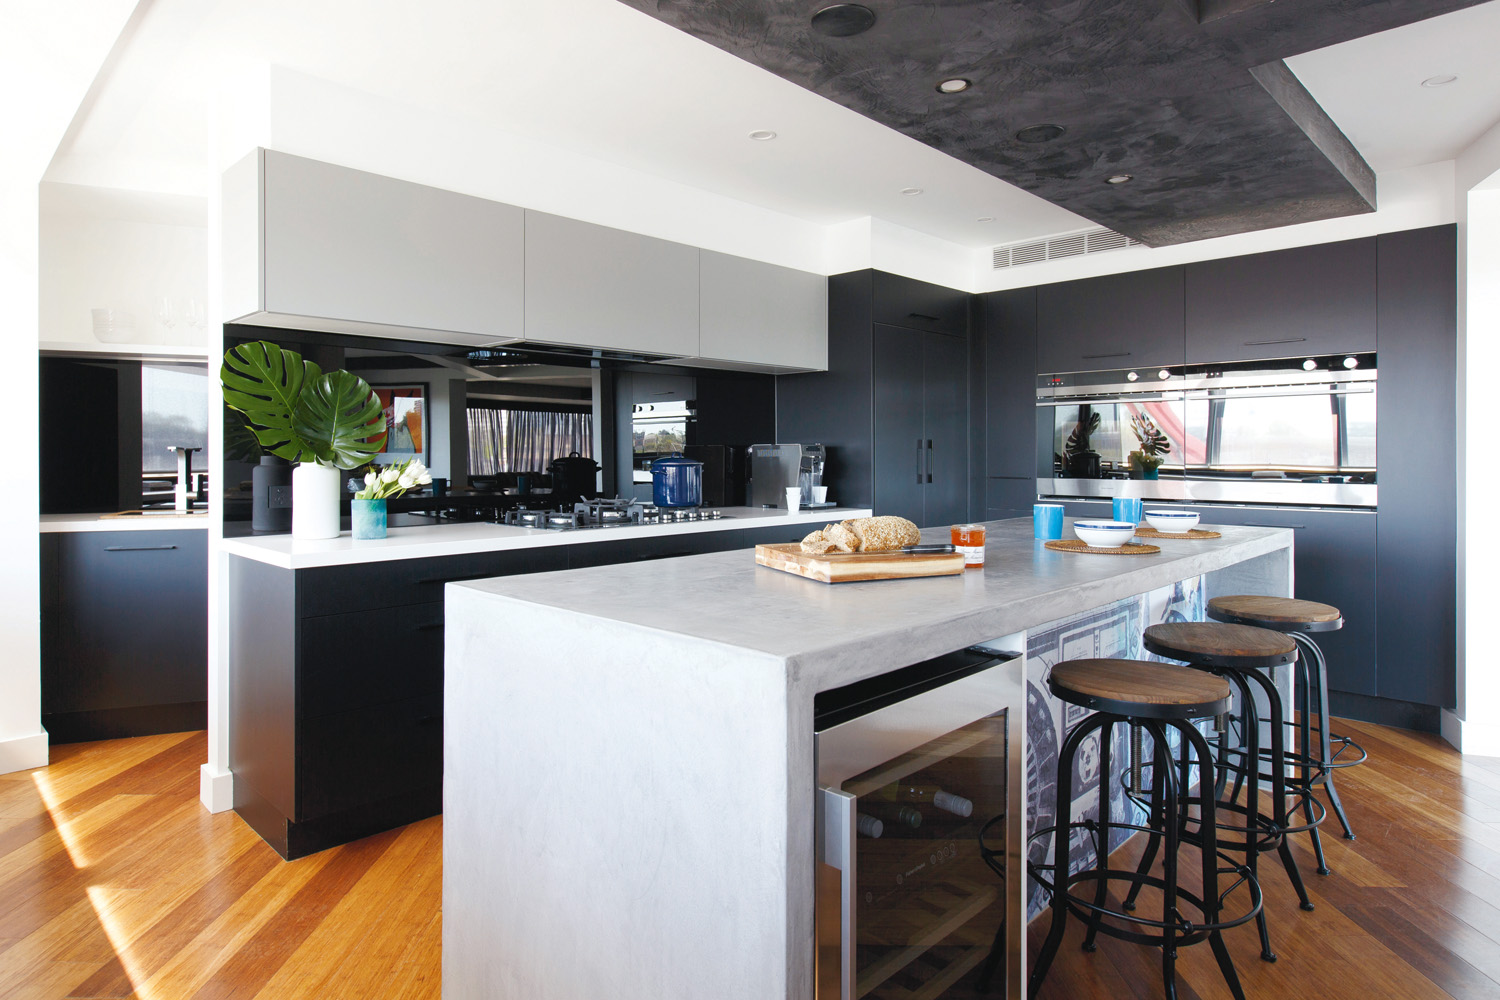 We take a look at the winning kitchen for this season from Caro and Kingi